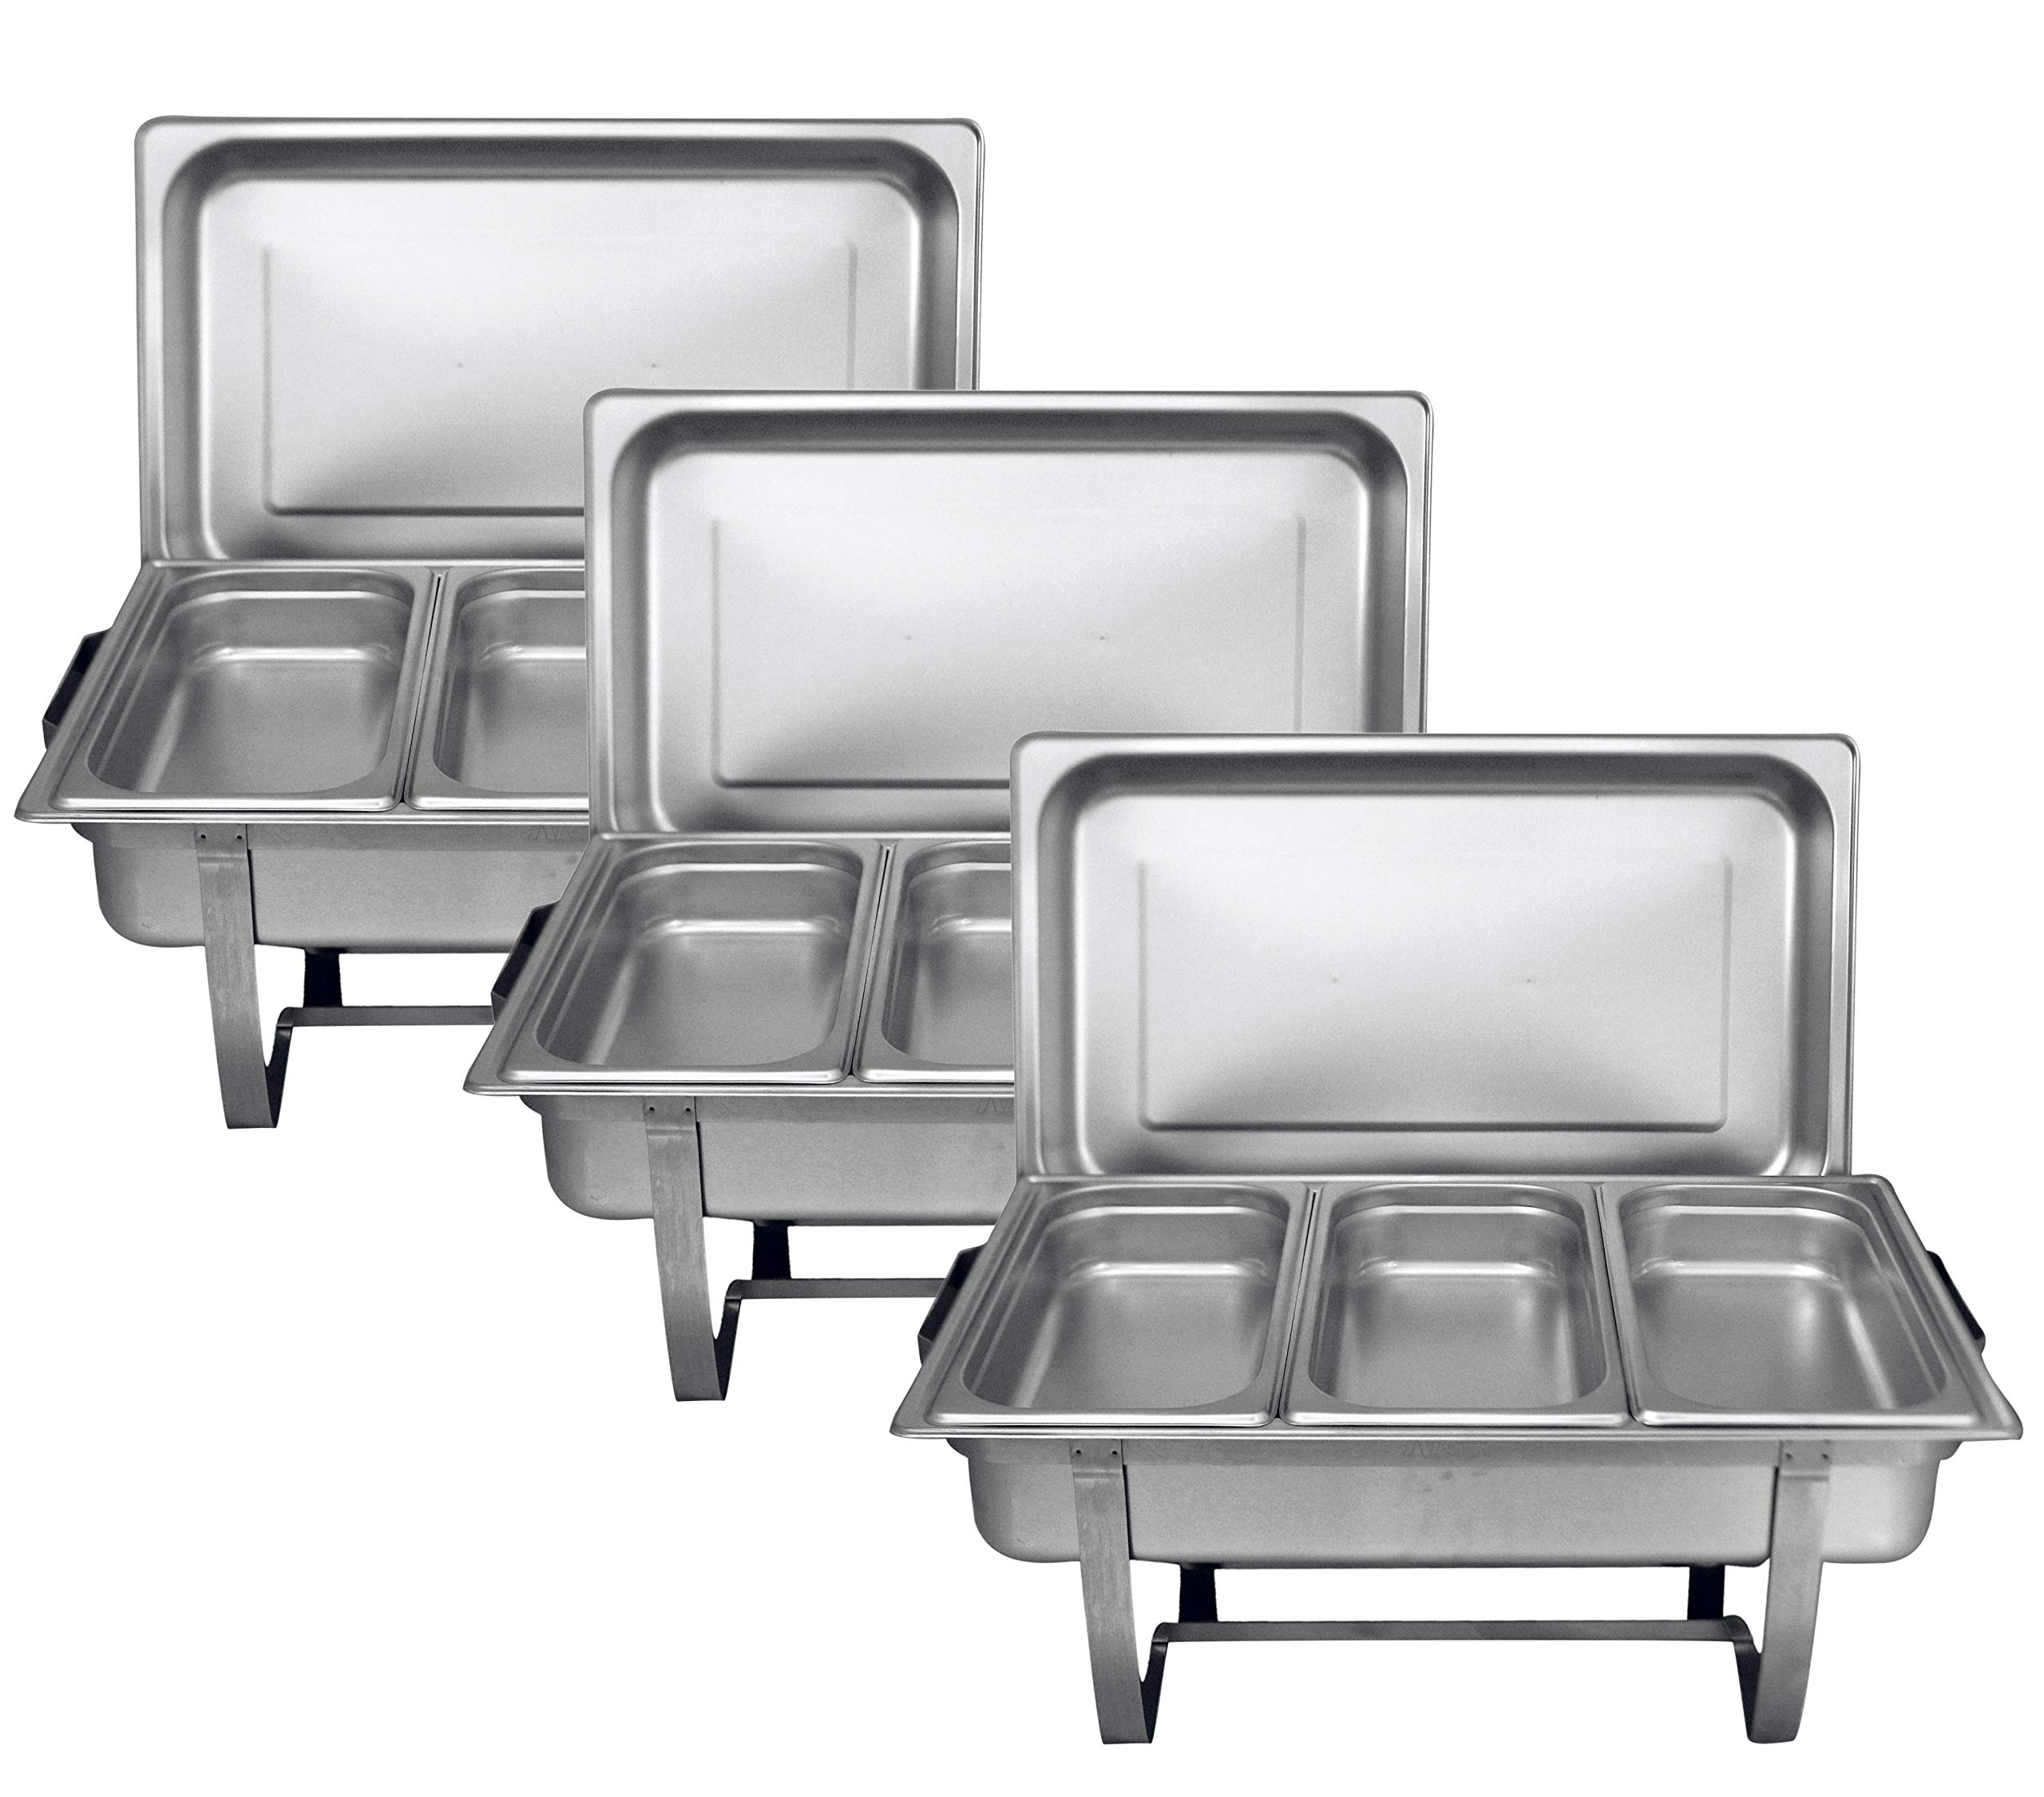 Tiger Chef 8 Quart Full Size Stainless Steel Chafer 3 Third Size Chafing Food Pans and Cool-Touch Plastic on top (3, Full Size with 1/3rd Inserts) Catering Supplies Buffet